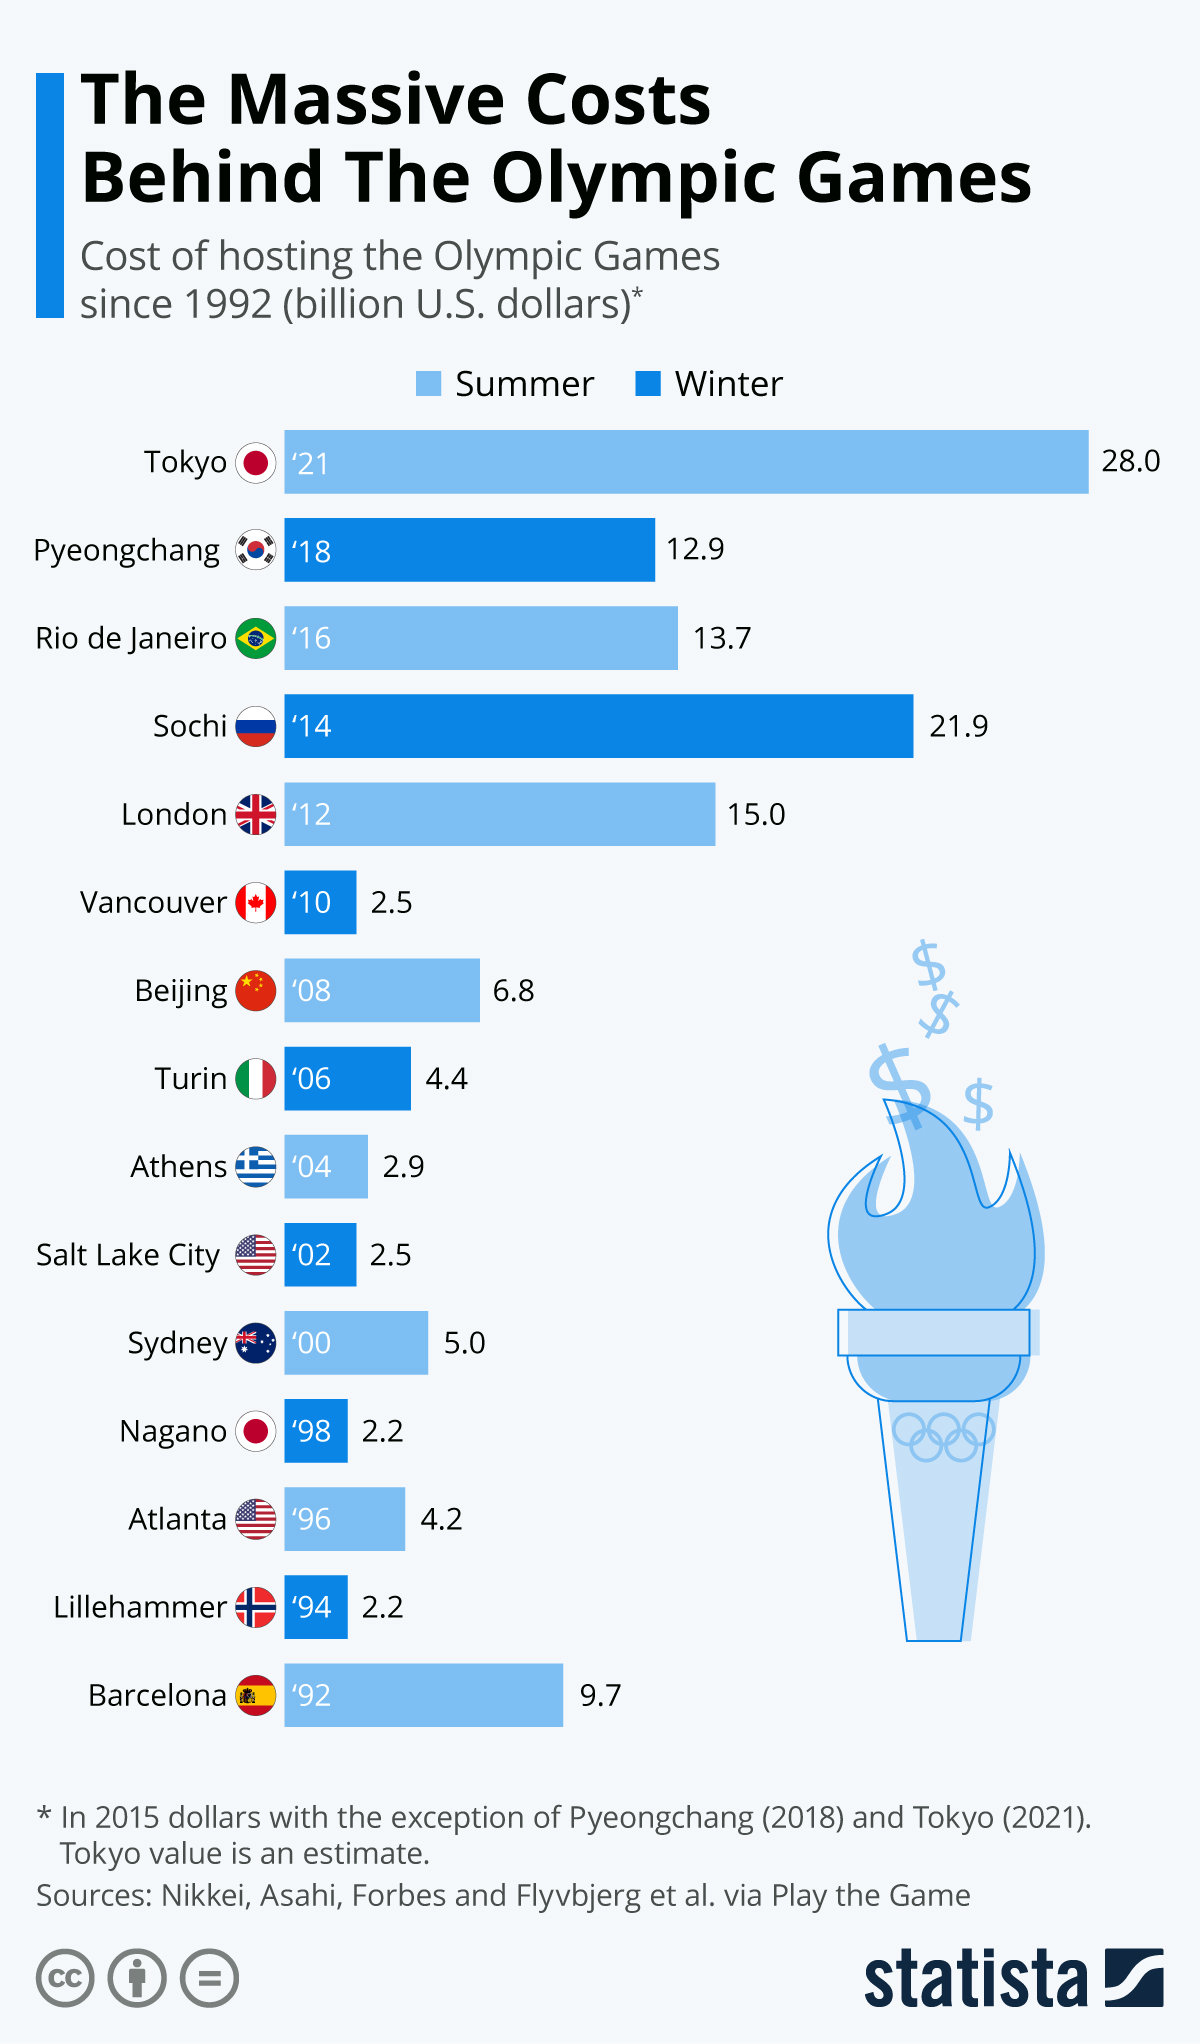 The outstanding cost of the Olympic Games